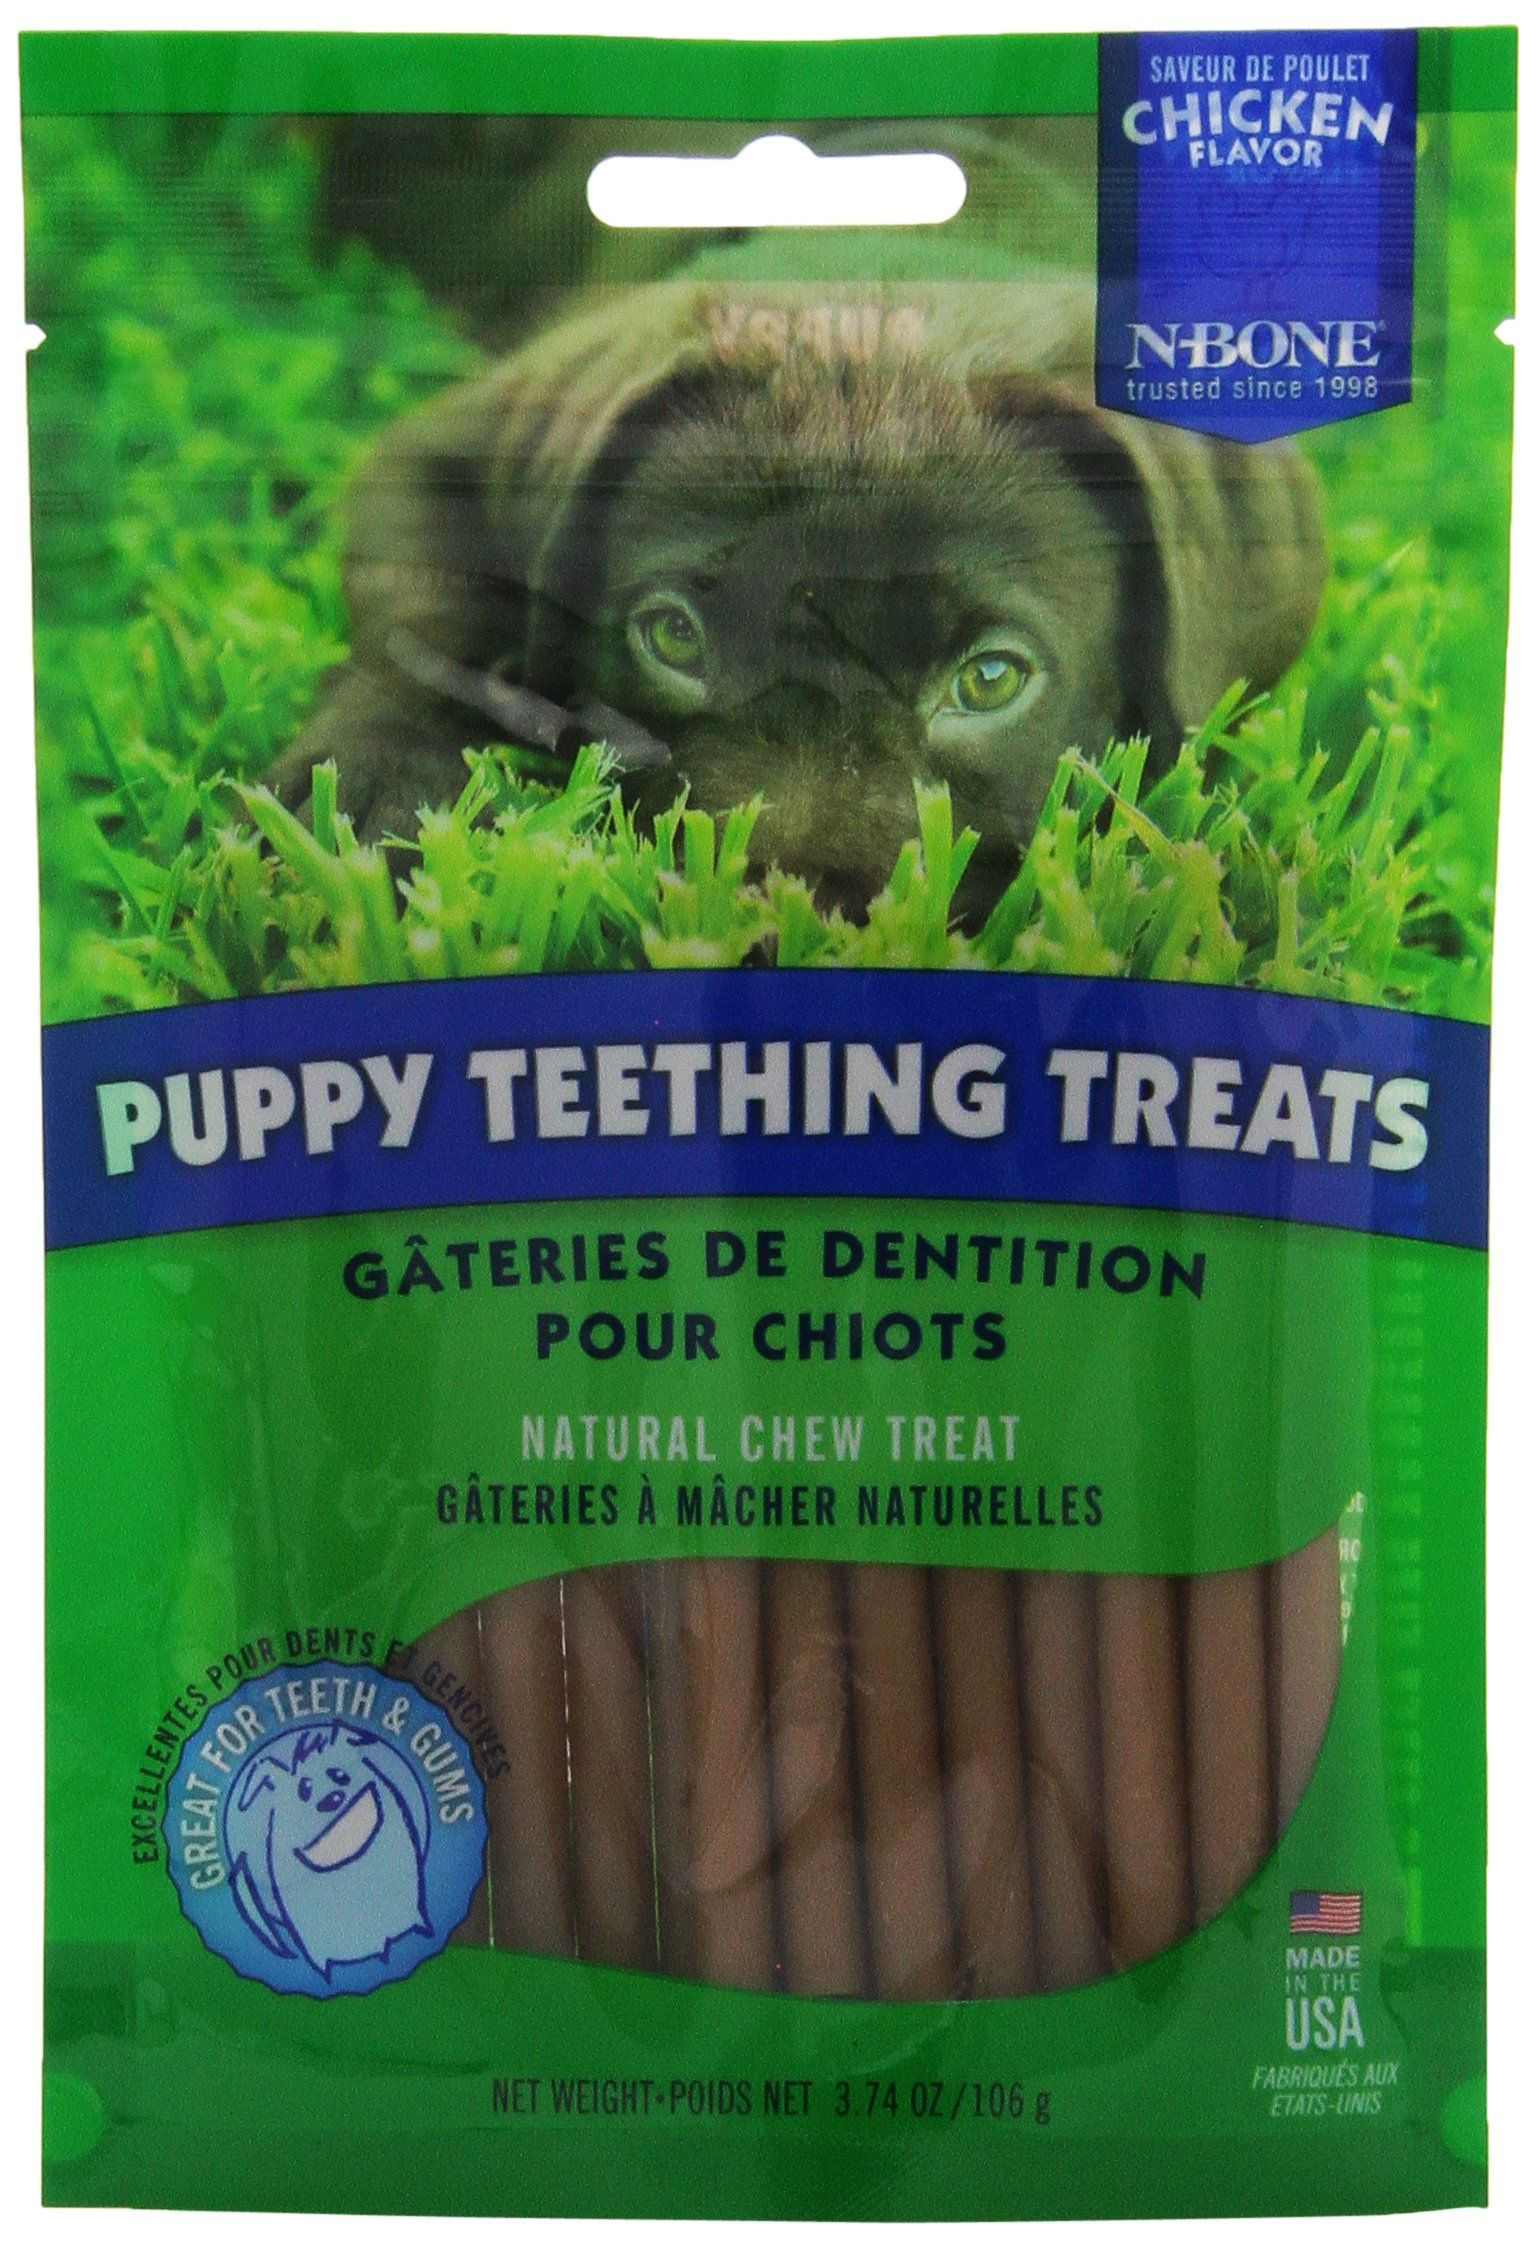 The Best Dog Bones For Your Puppy S Teeth Dogvills Puppy